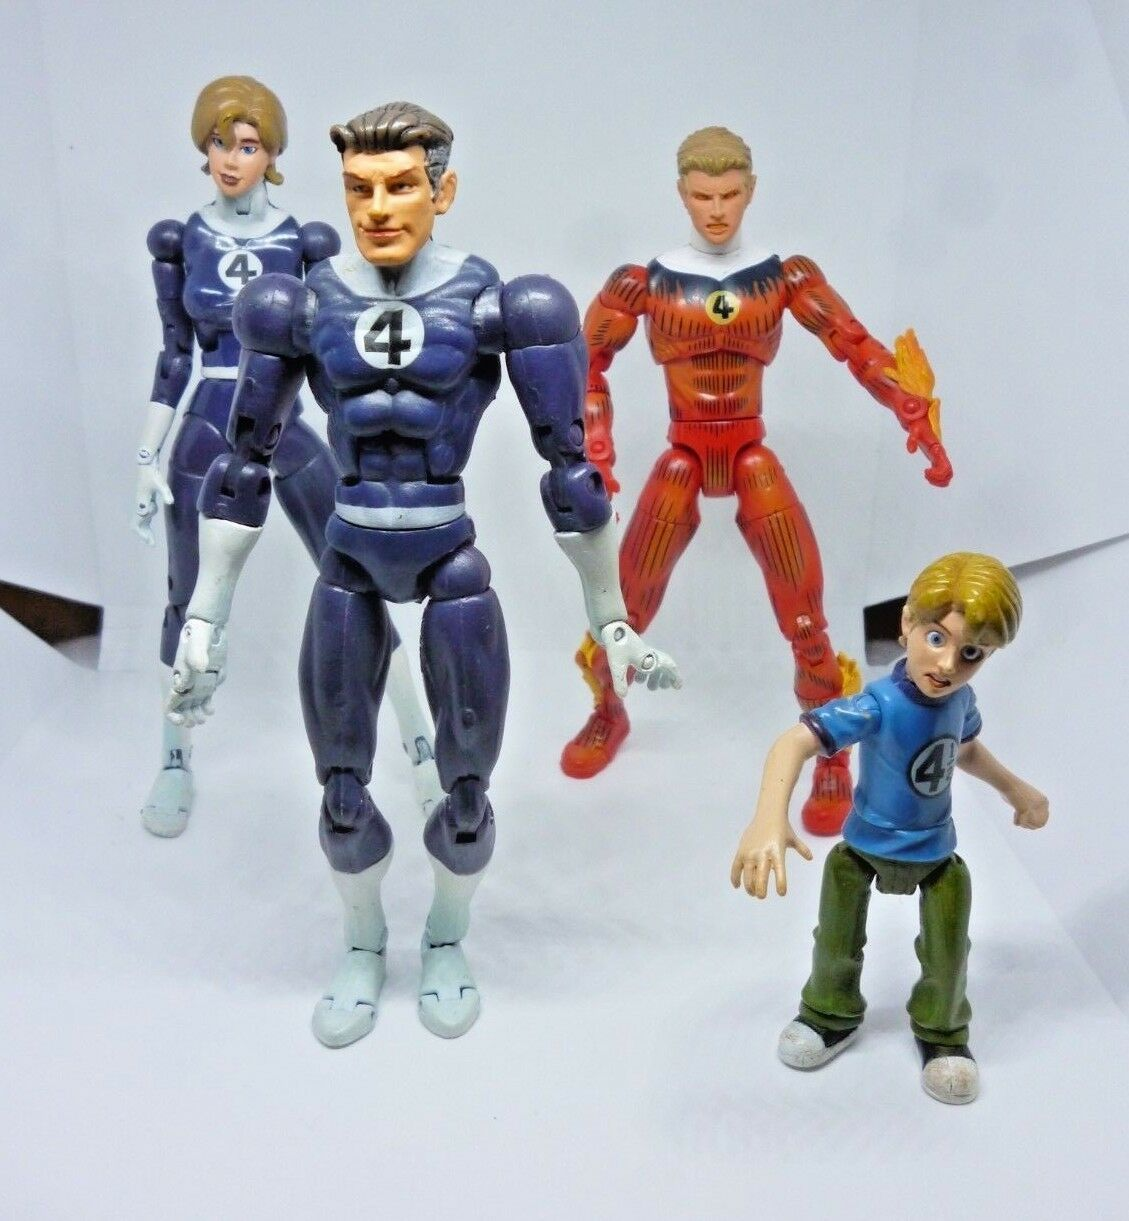 Fantastic 4 Figures TBWW Marvel 2004  Toy Biz Action Figures Toys Play Time  livraison gratuite